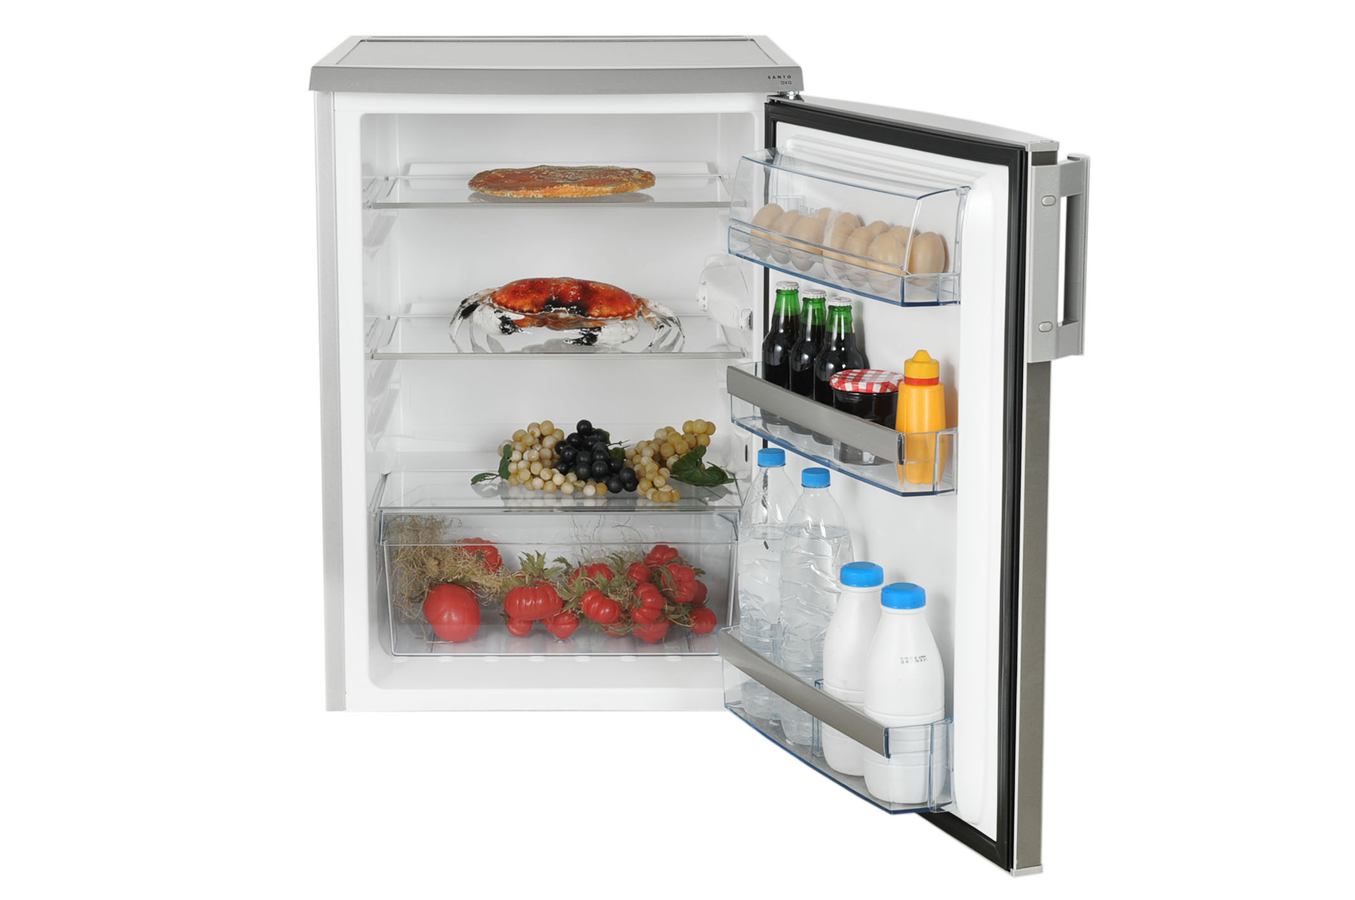 refrigerateur sous plan aeg s71700tsx0 (3471411)  darty